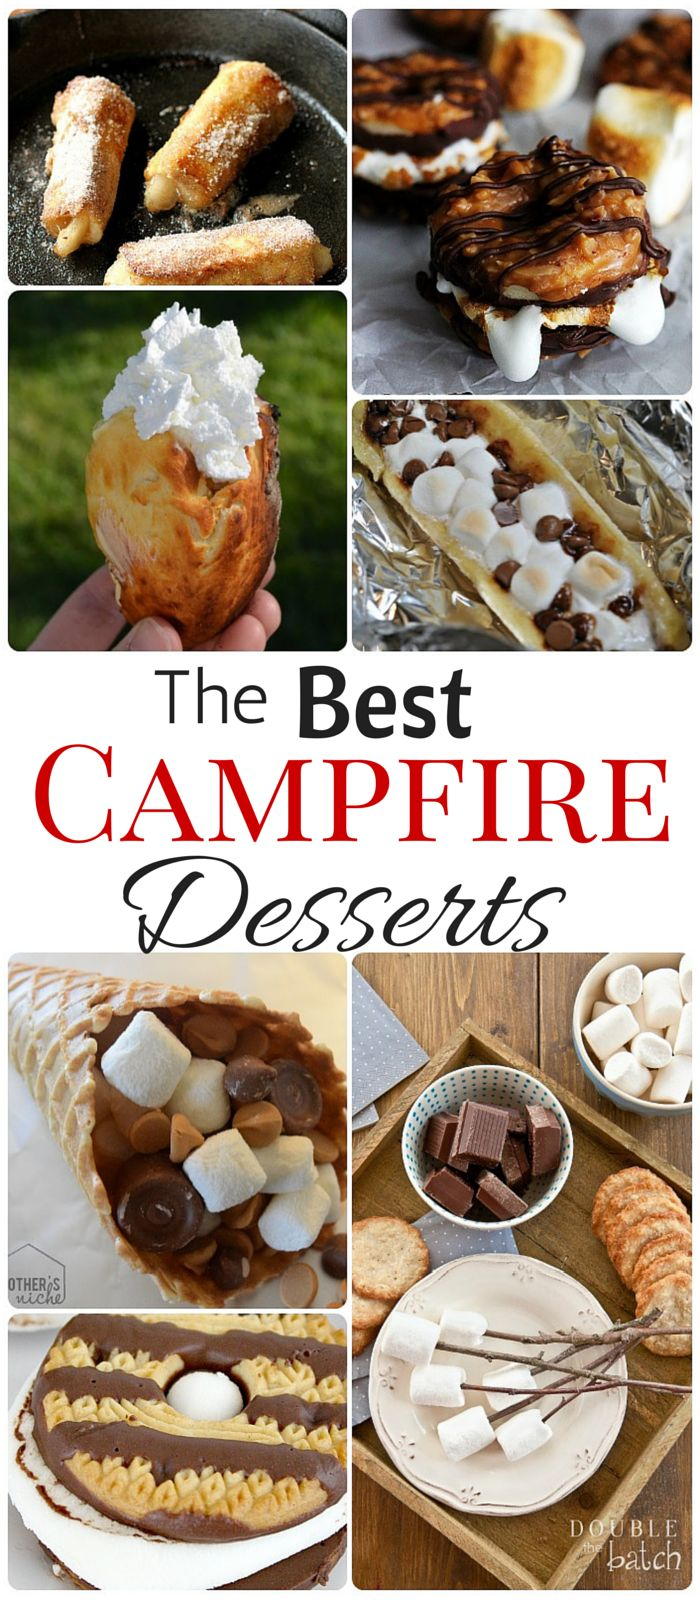 Nothing better than camping desserts! Pinning this for my next camping trip! #DoubletheBatch